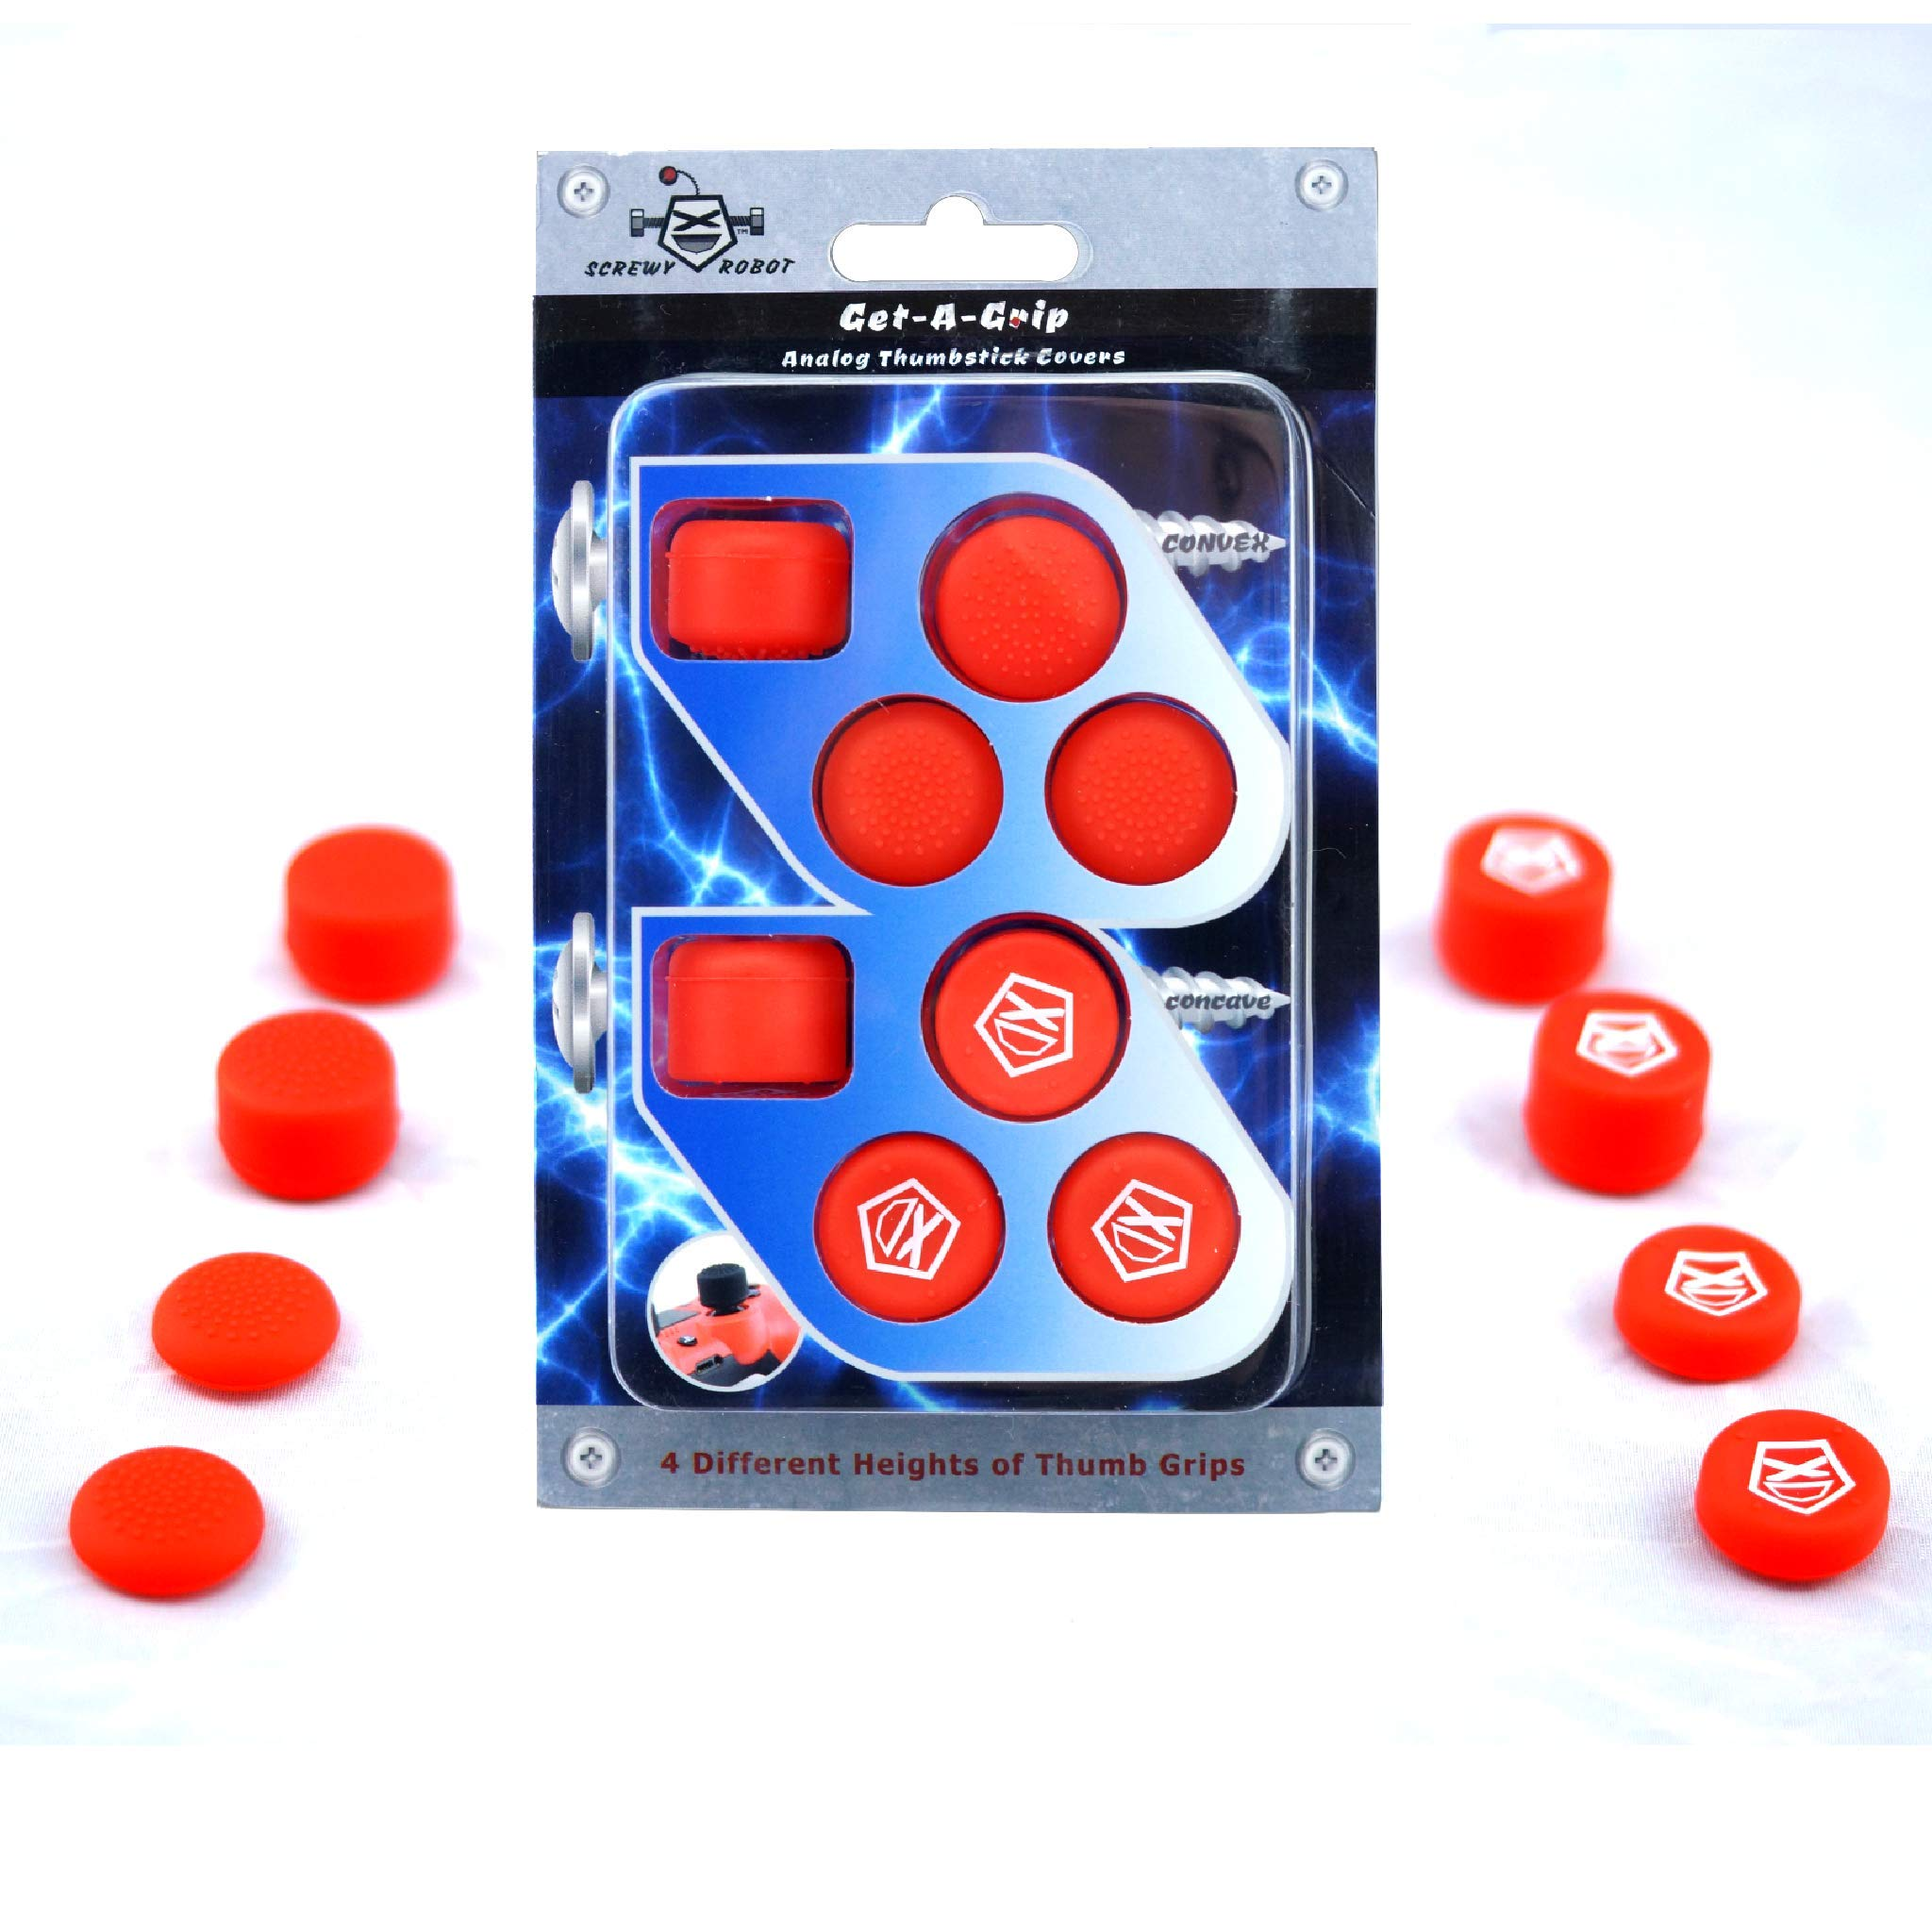 Get-A-Grip Analog Thumbstick Grip Covers for PS4/PS3 by ScrewyRobot (Red) by ScrewyRobot